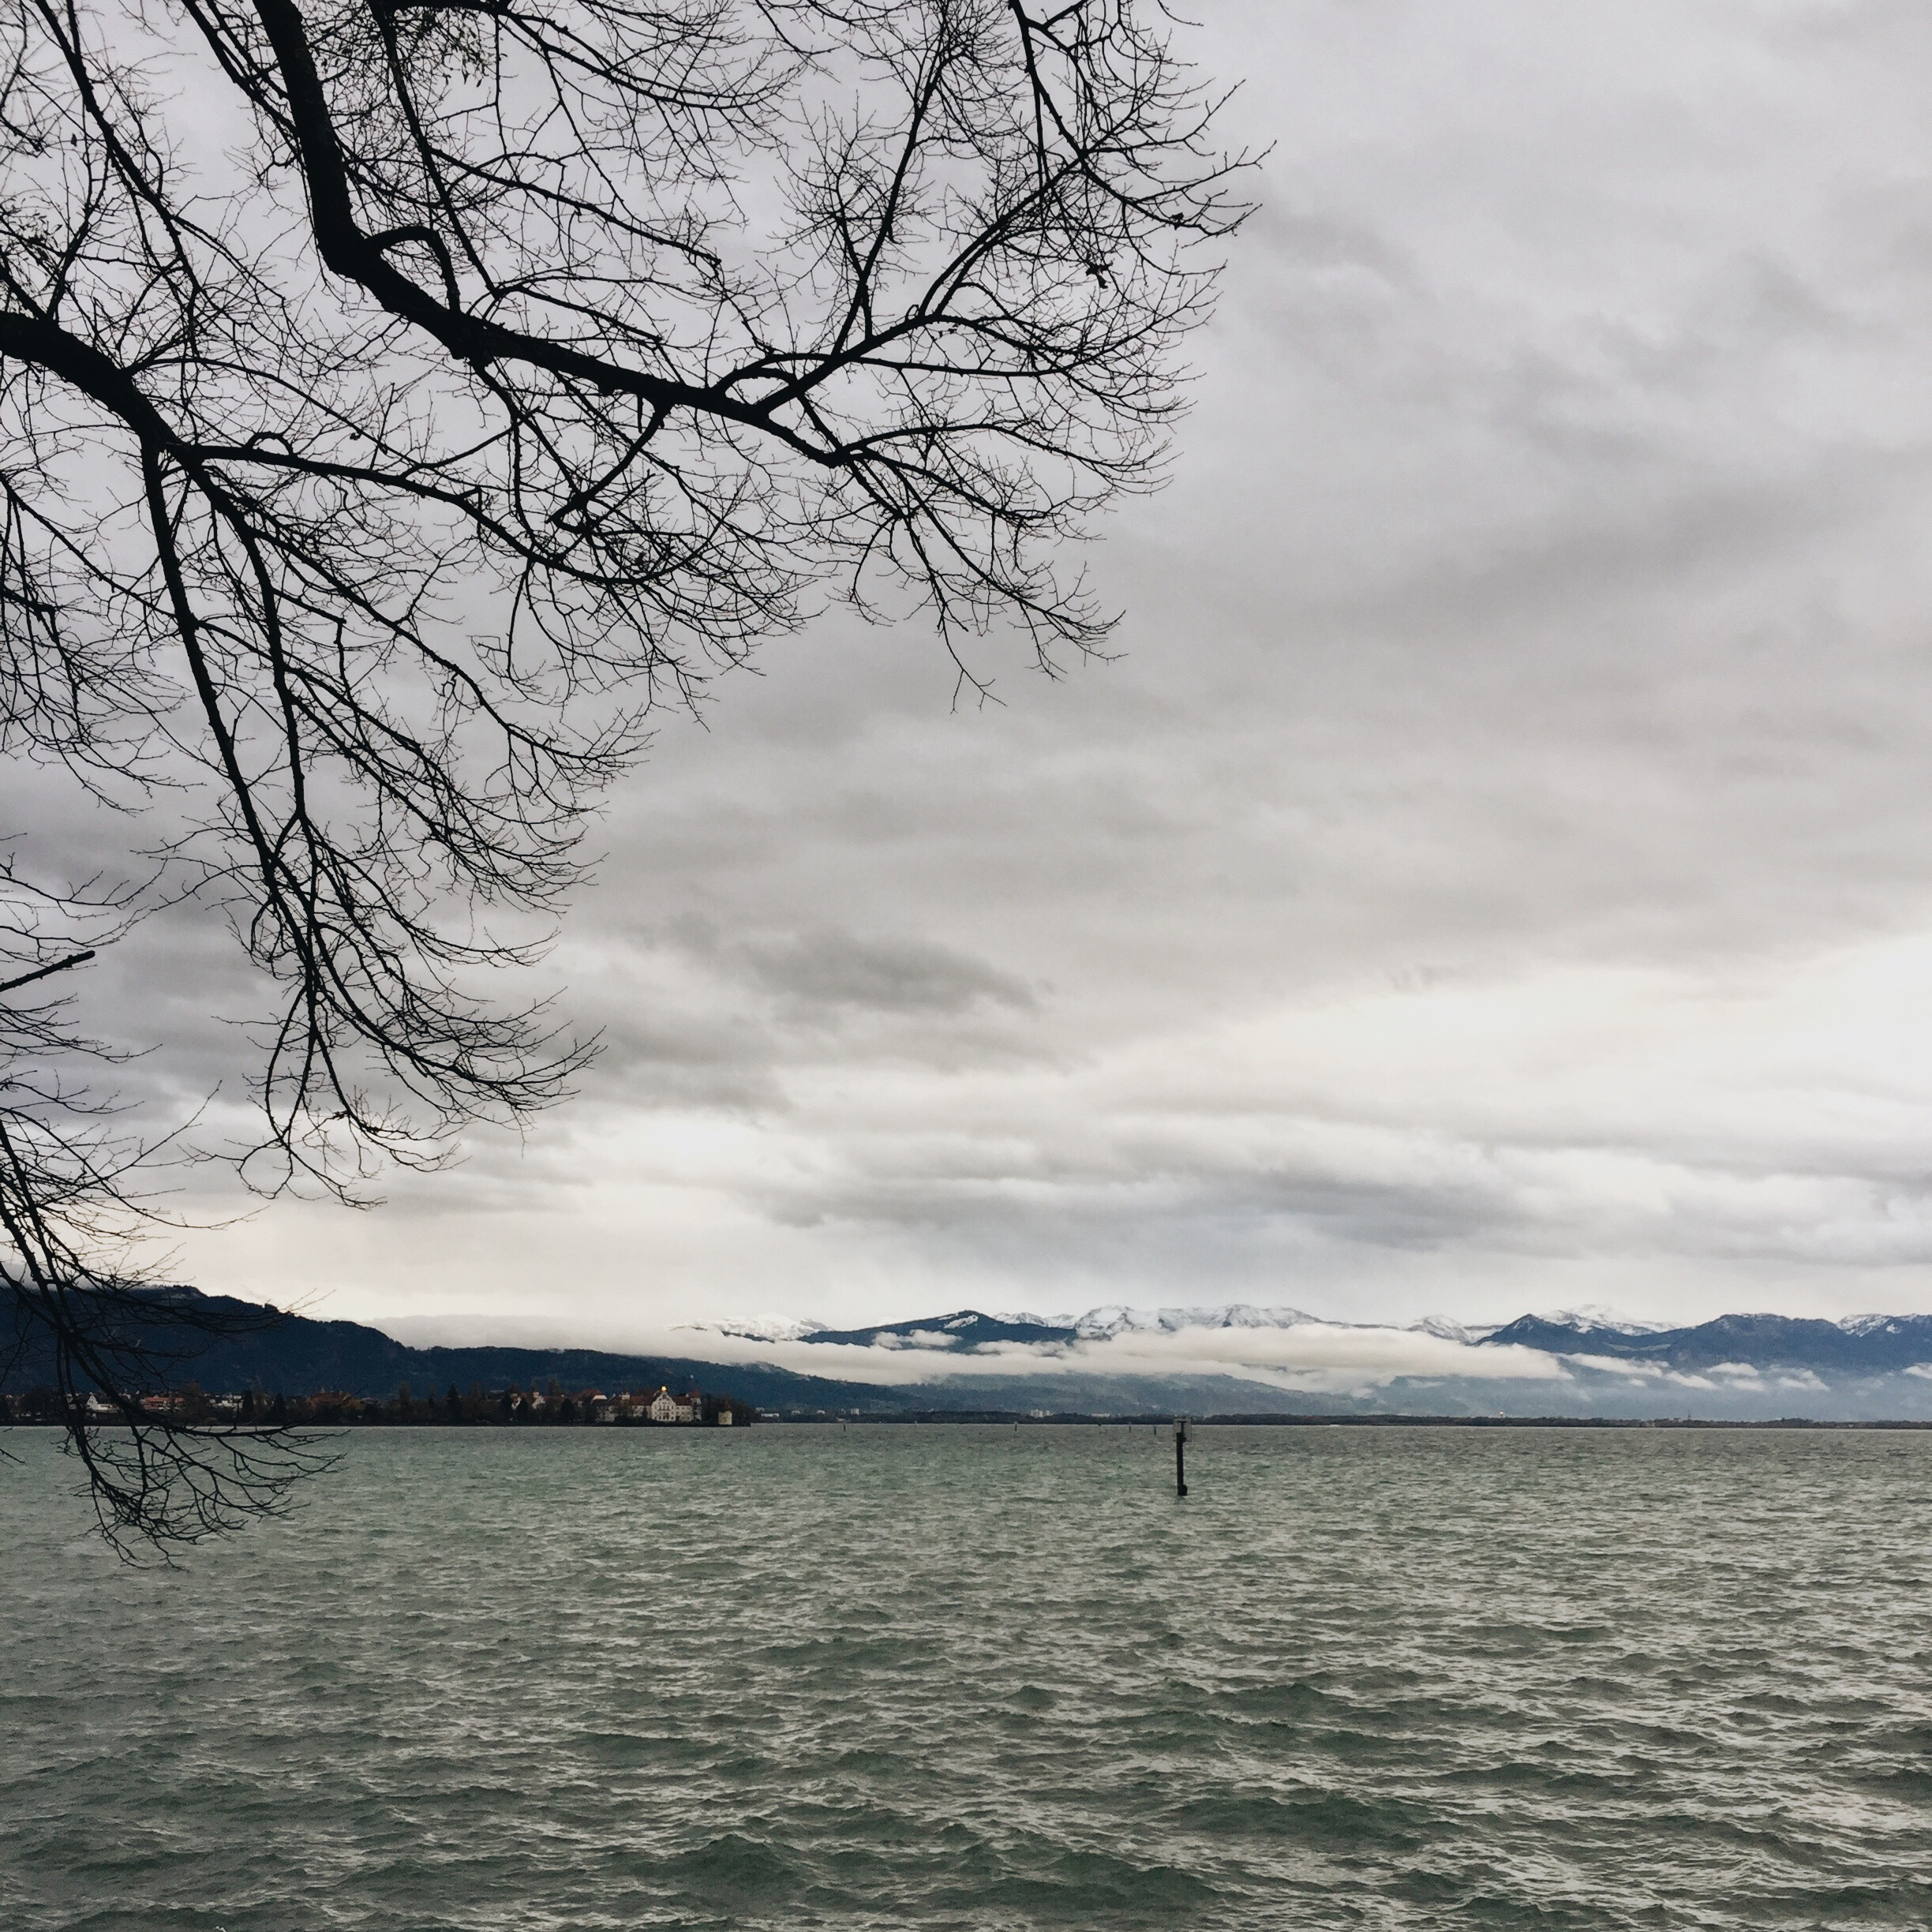 4 See Berge Bodensee Sturm - pictured #45